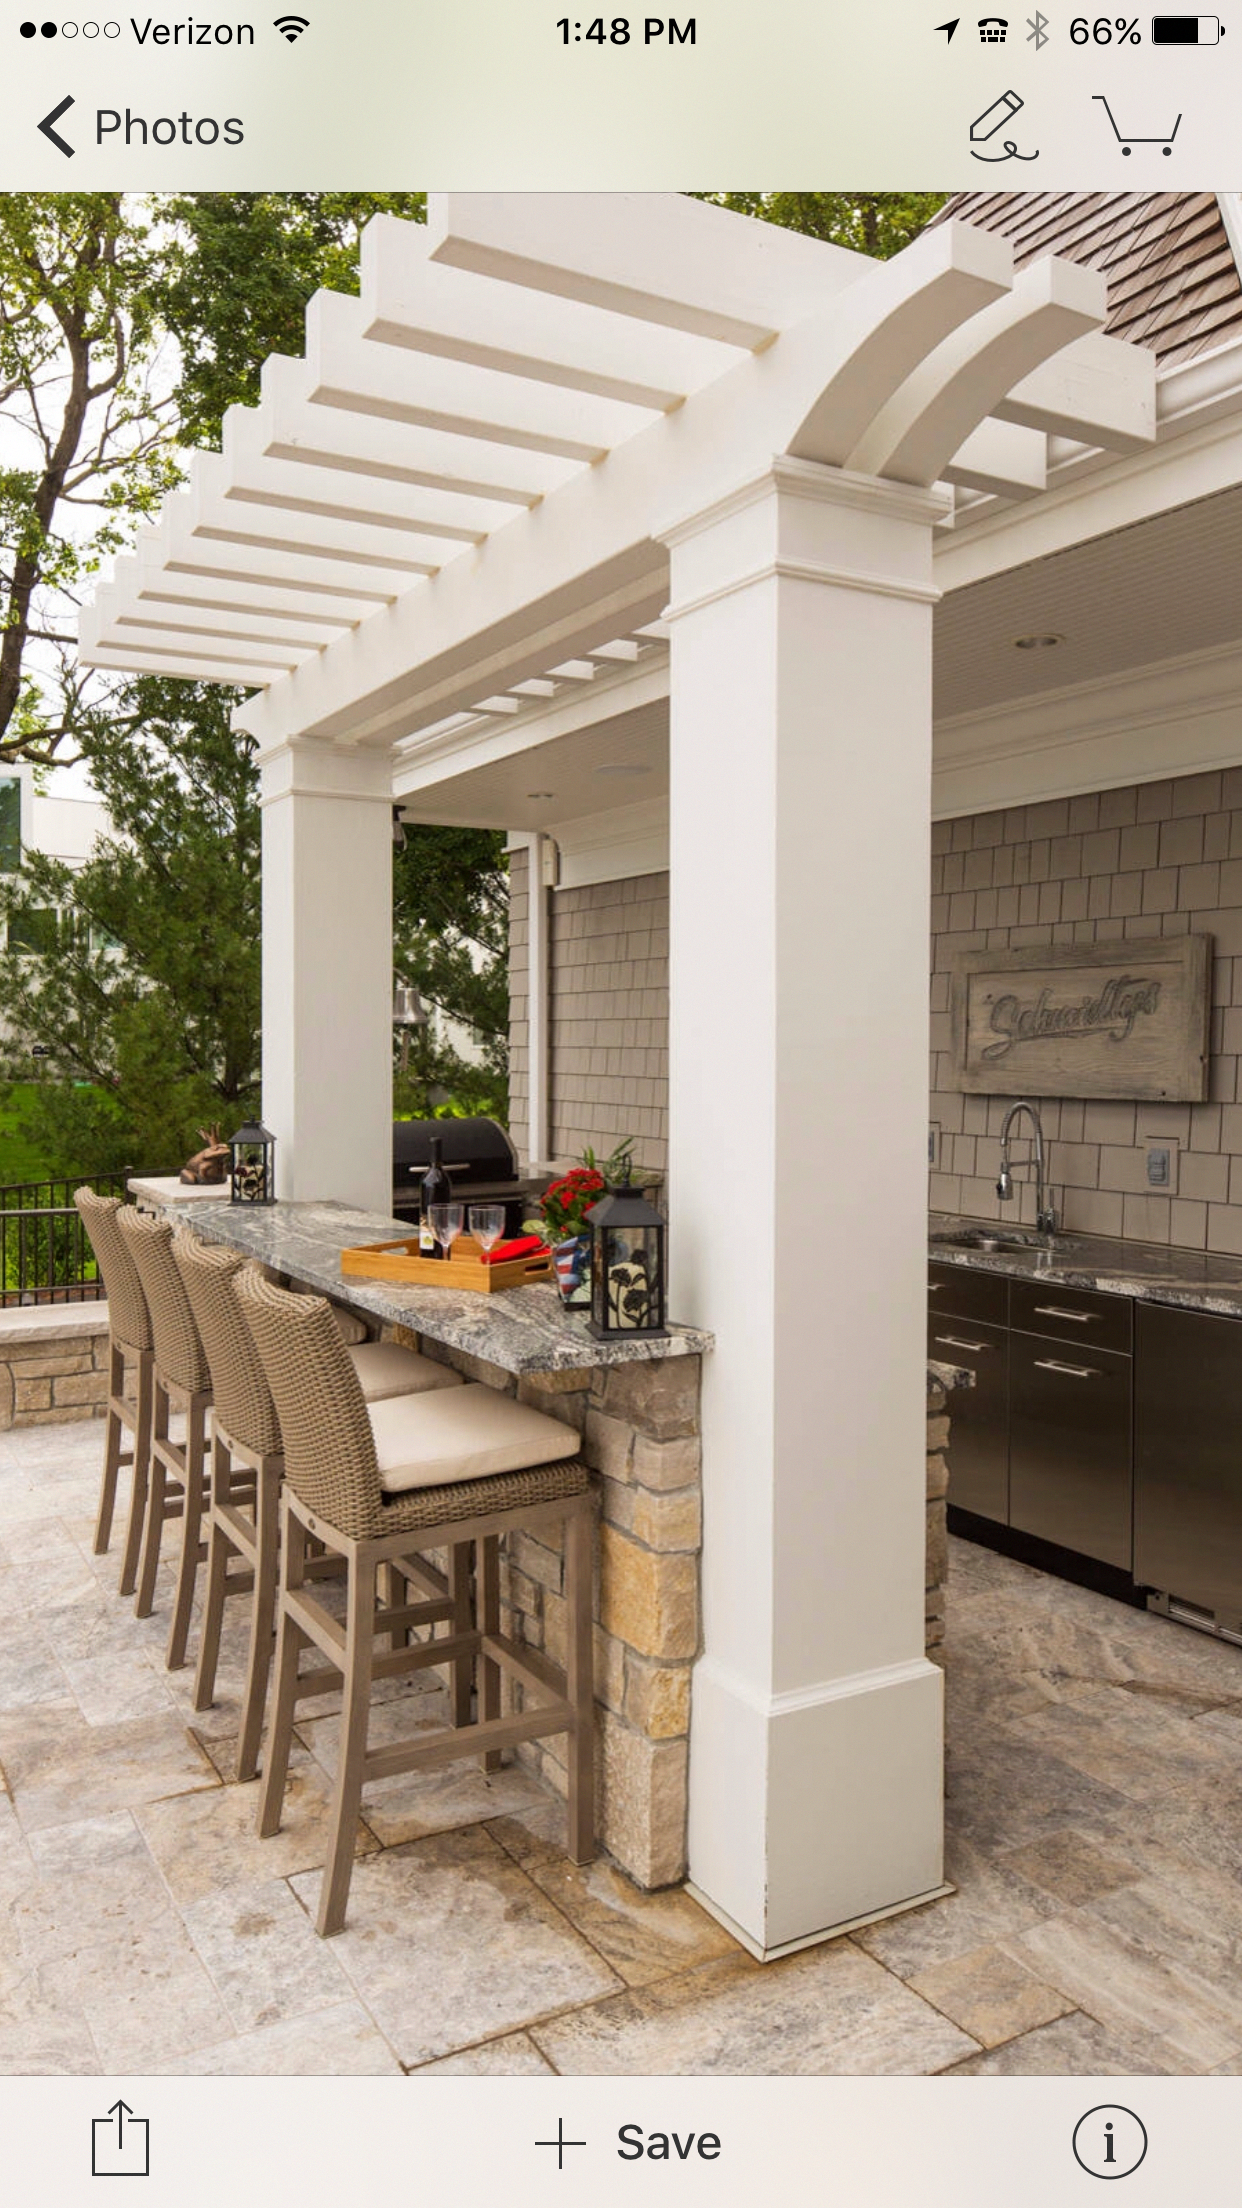 Outdoor kitchen design ideas bar find and save ideas about